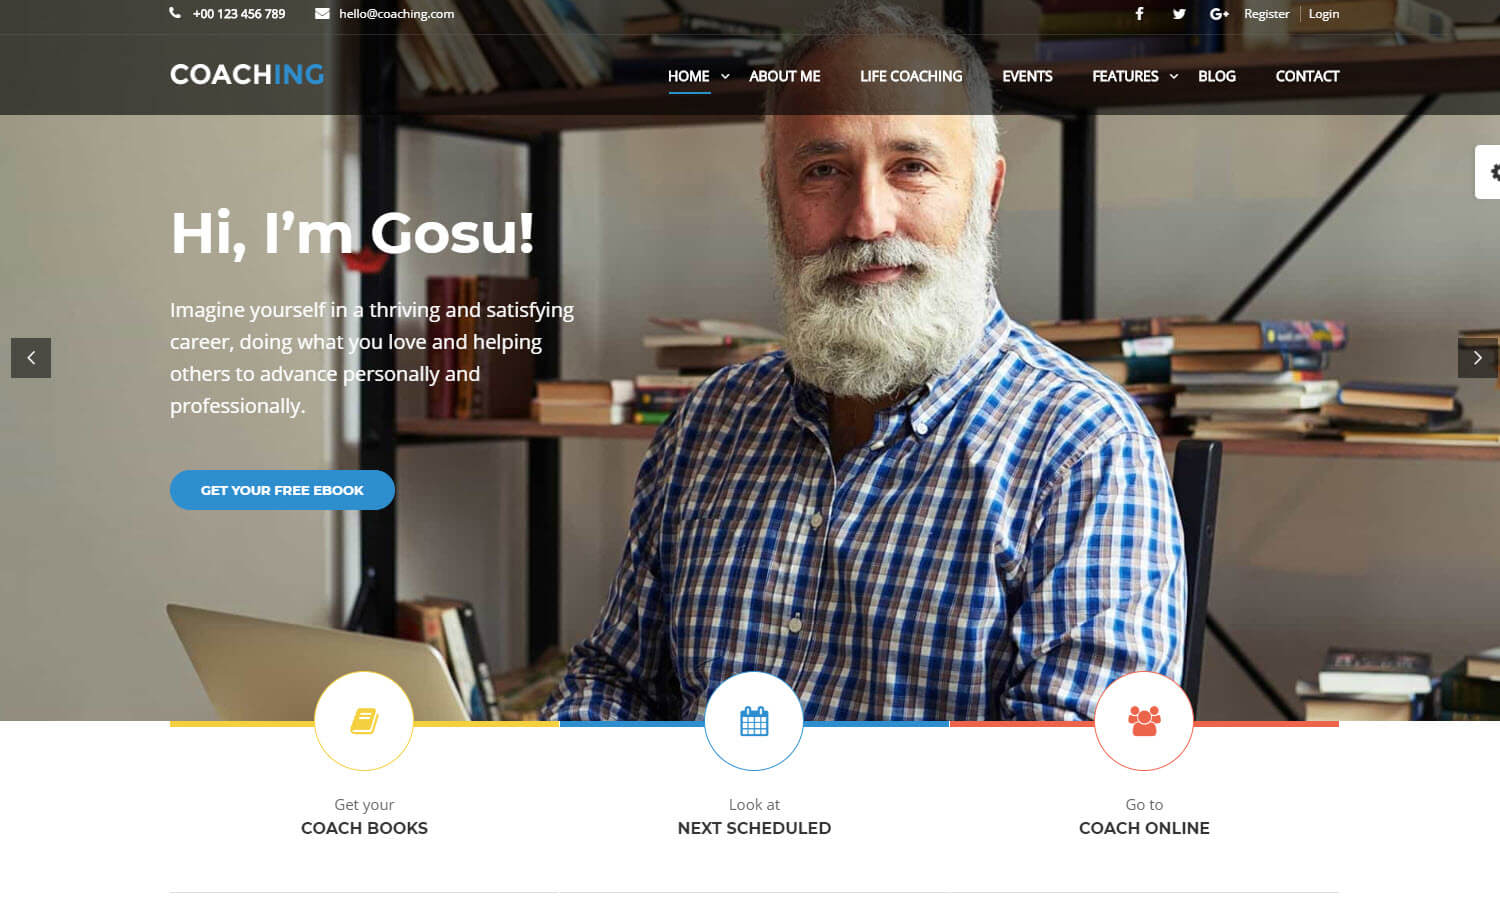 Coaching WP screenshot